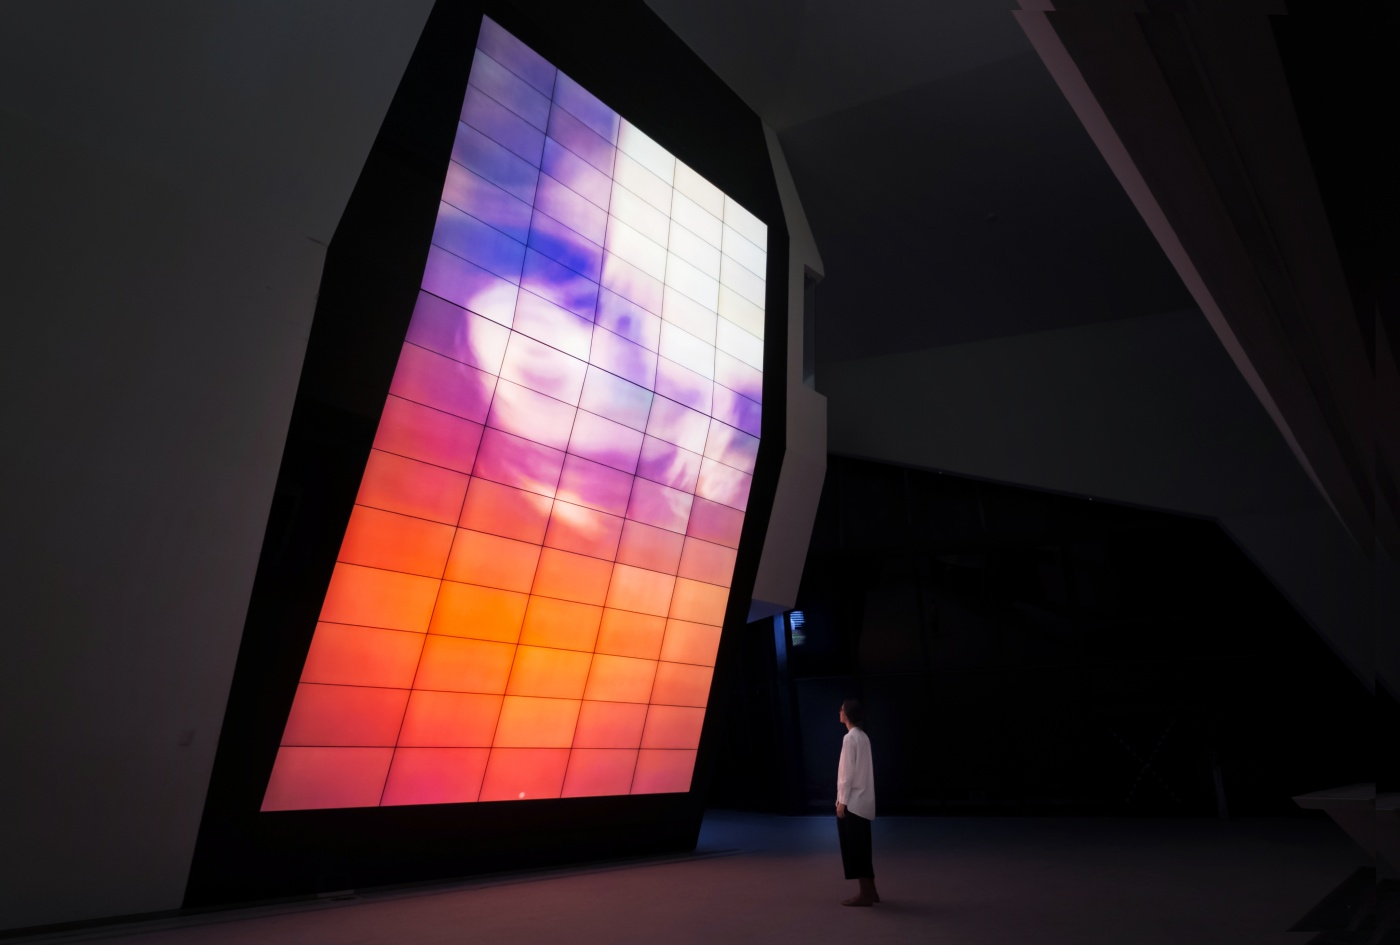 : A permanent installation of three ever-changing generative artworks, designed as metaphors for the spirit of scientific research by FIELD.IO